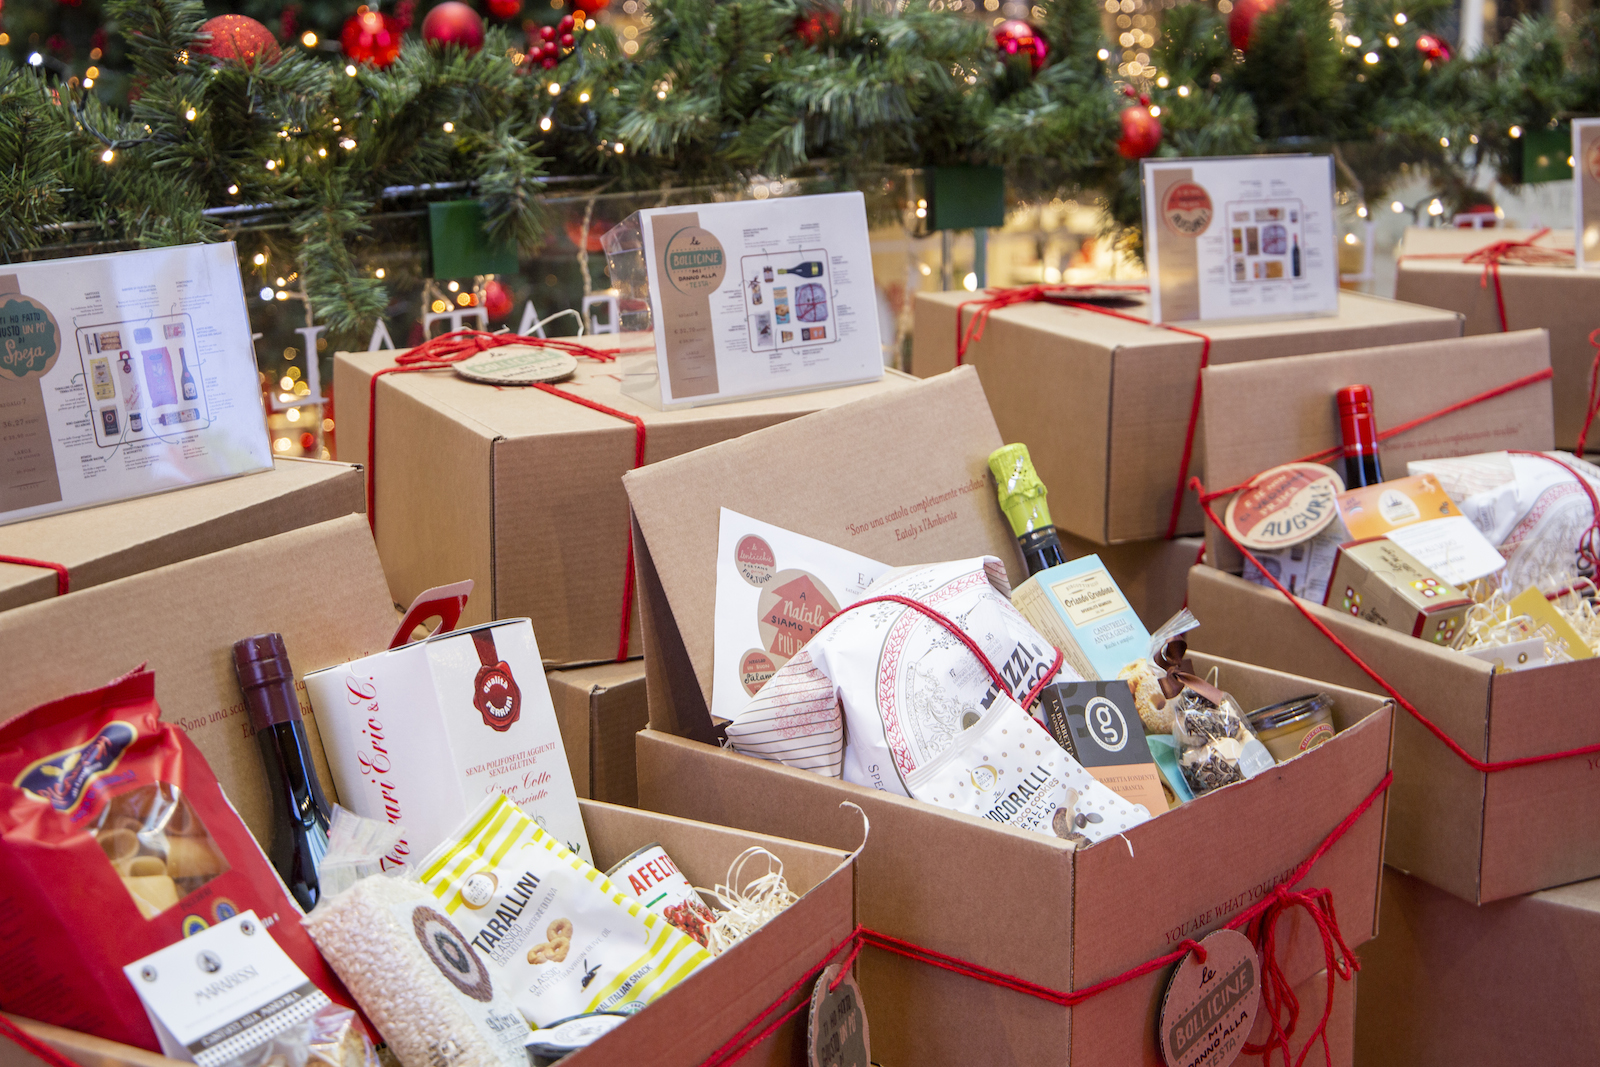 What a package this Christmas! Here are the Christmas baskets of Eataly